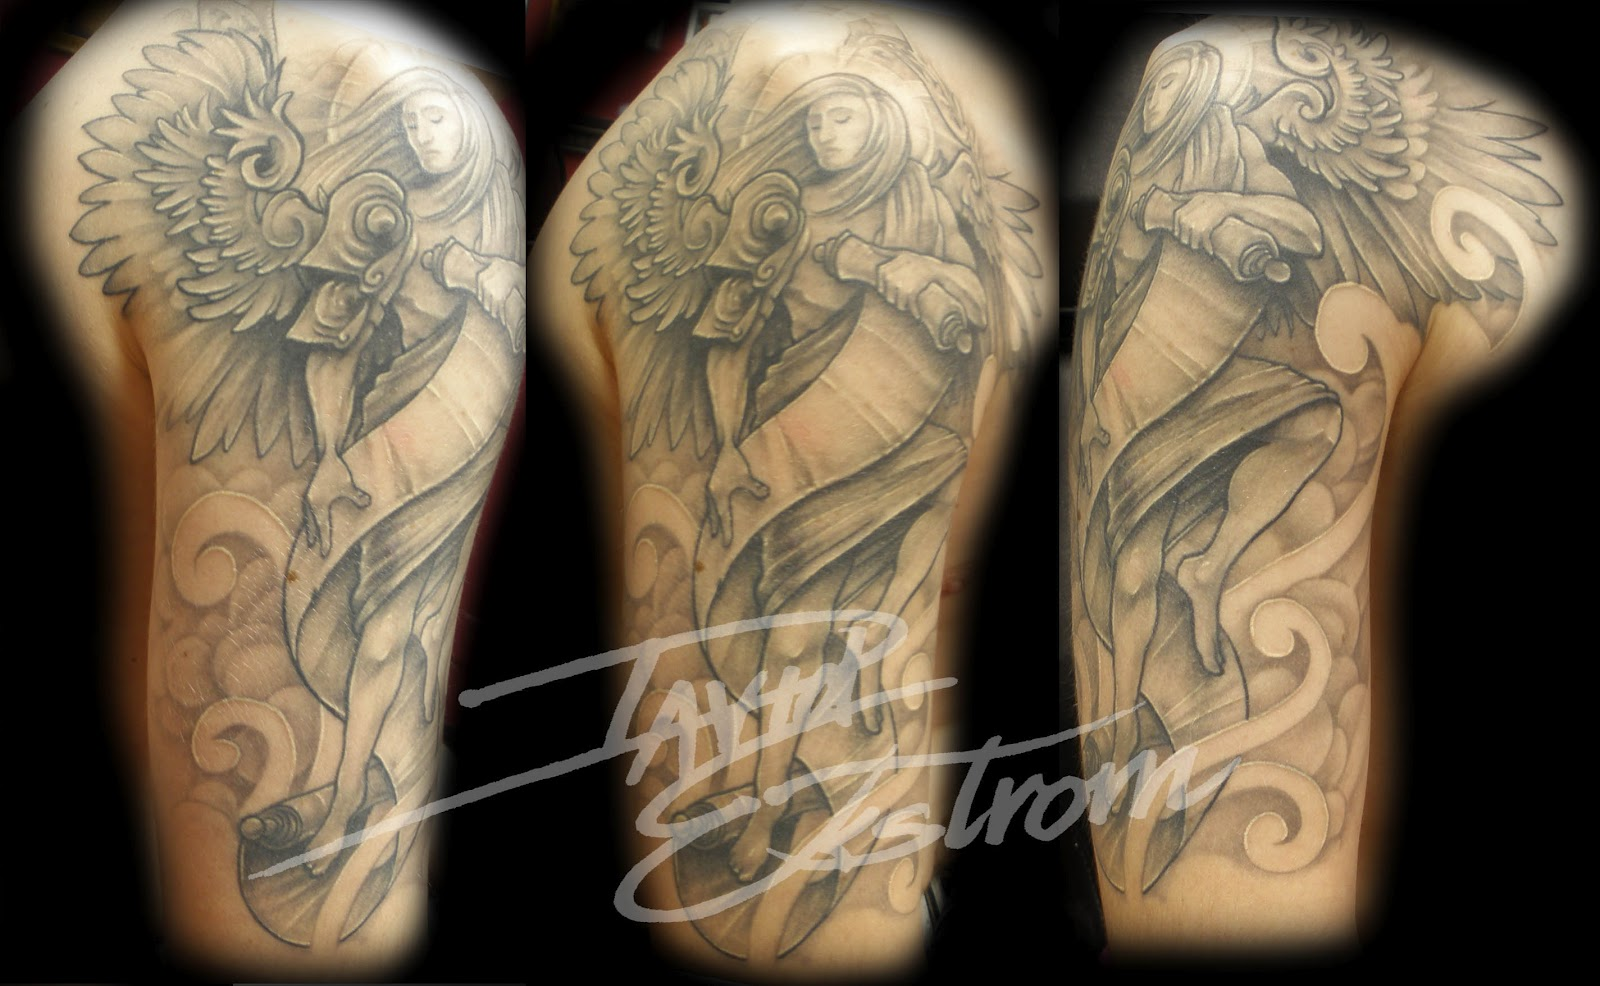 Tattoos & Art by: DAVID EKSTROM